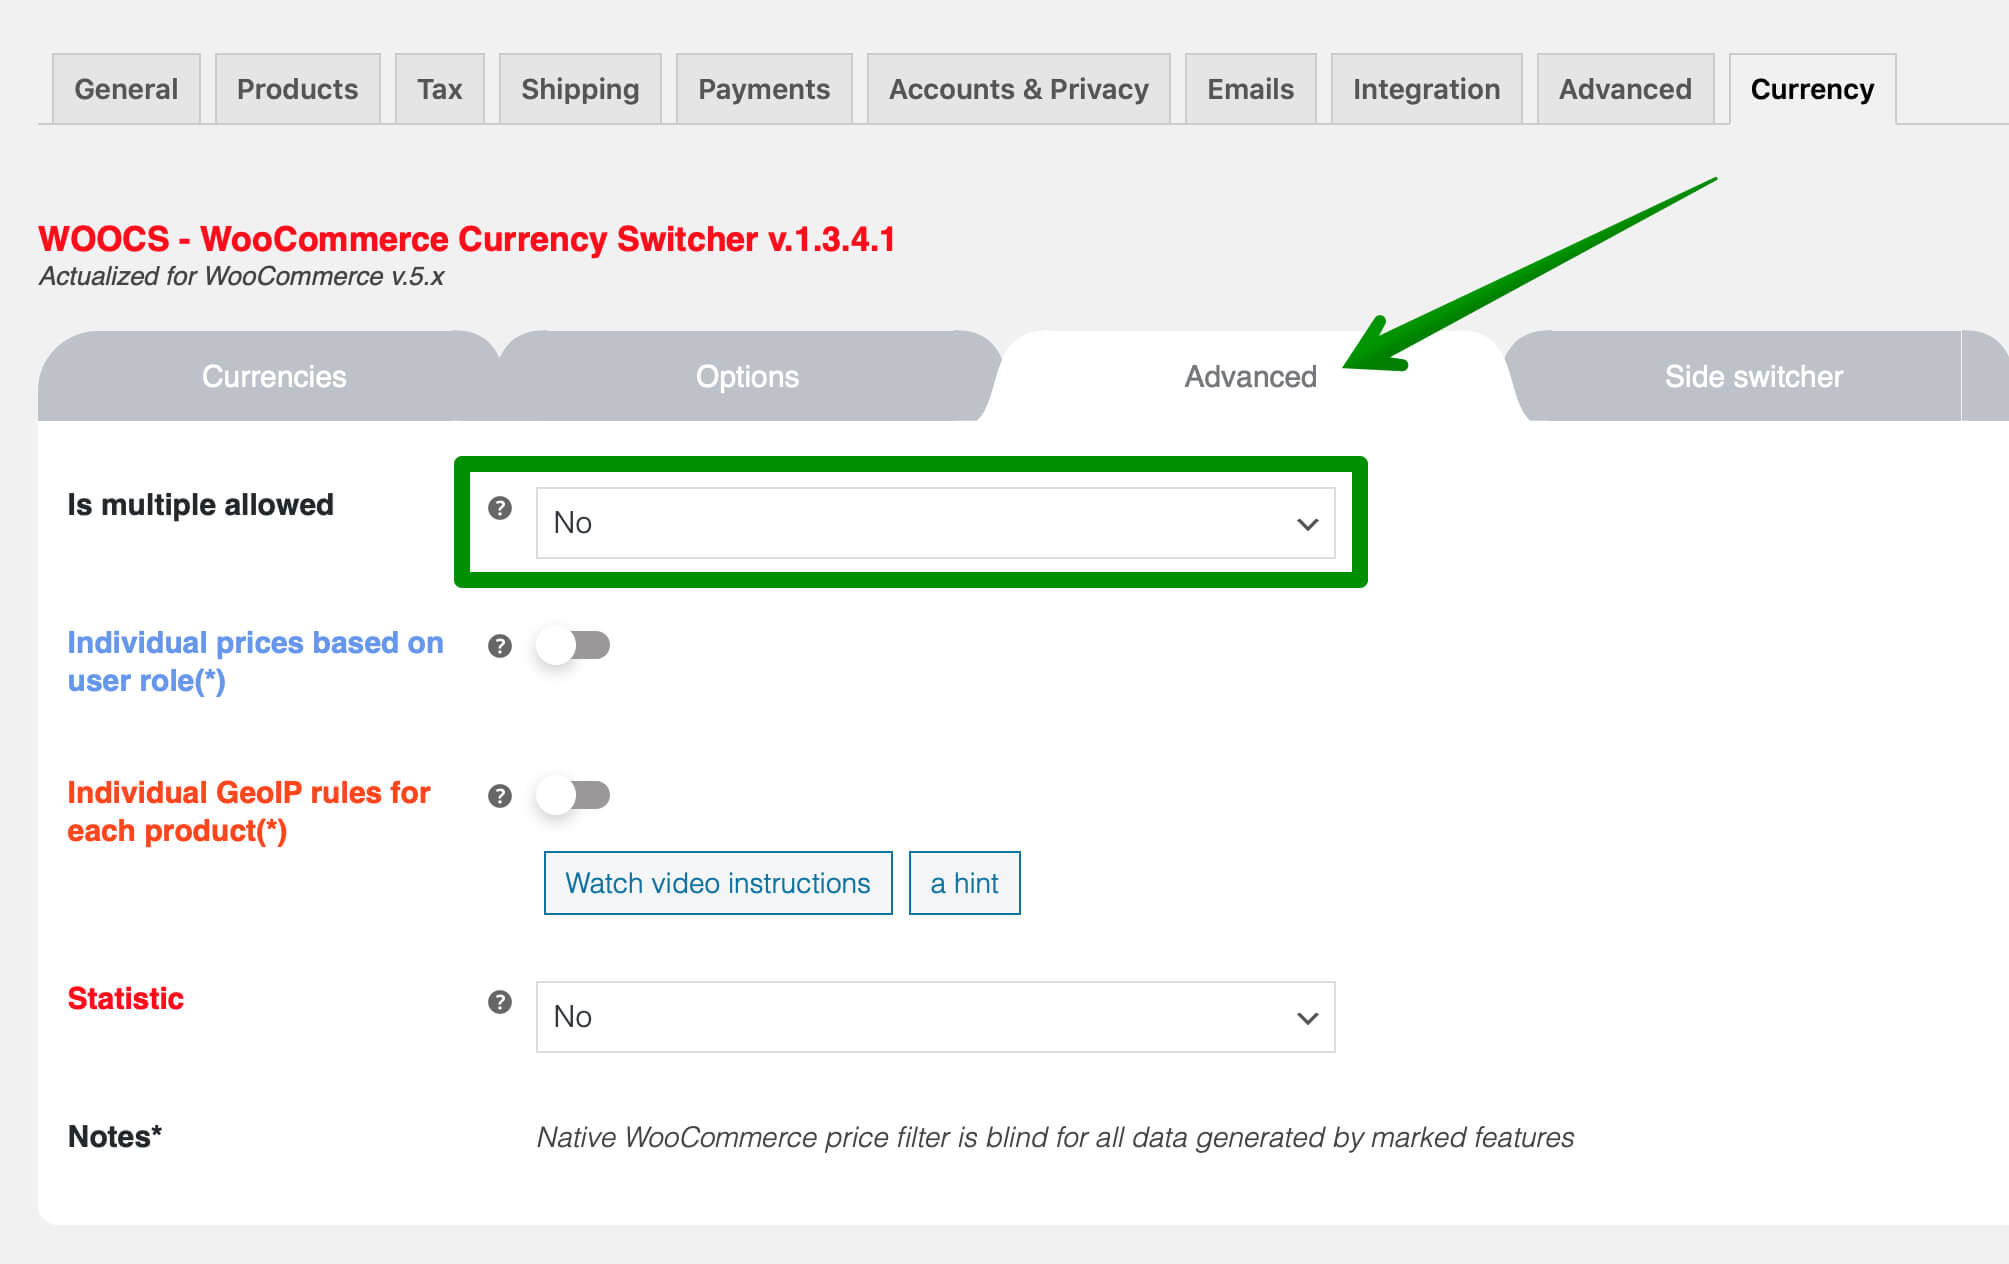 WOOCS Currency Switcher Advanced tab